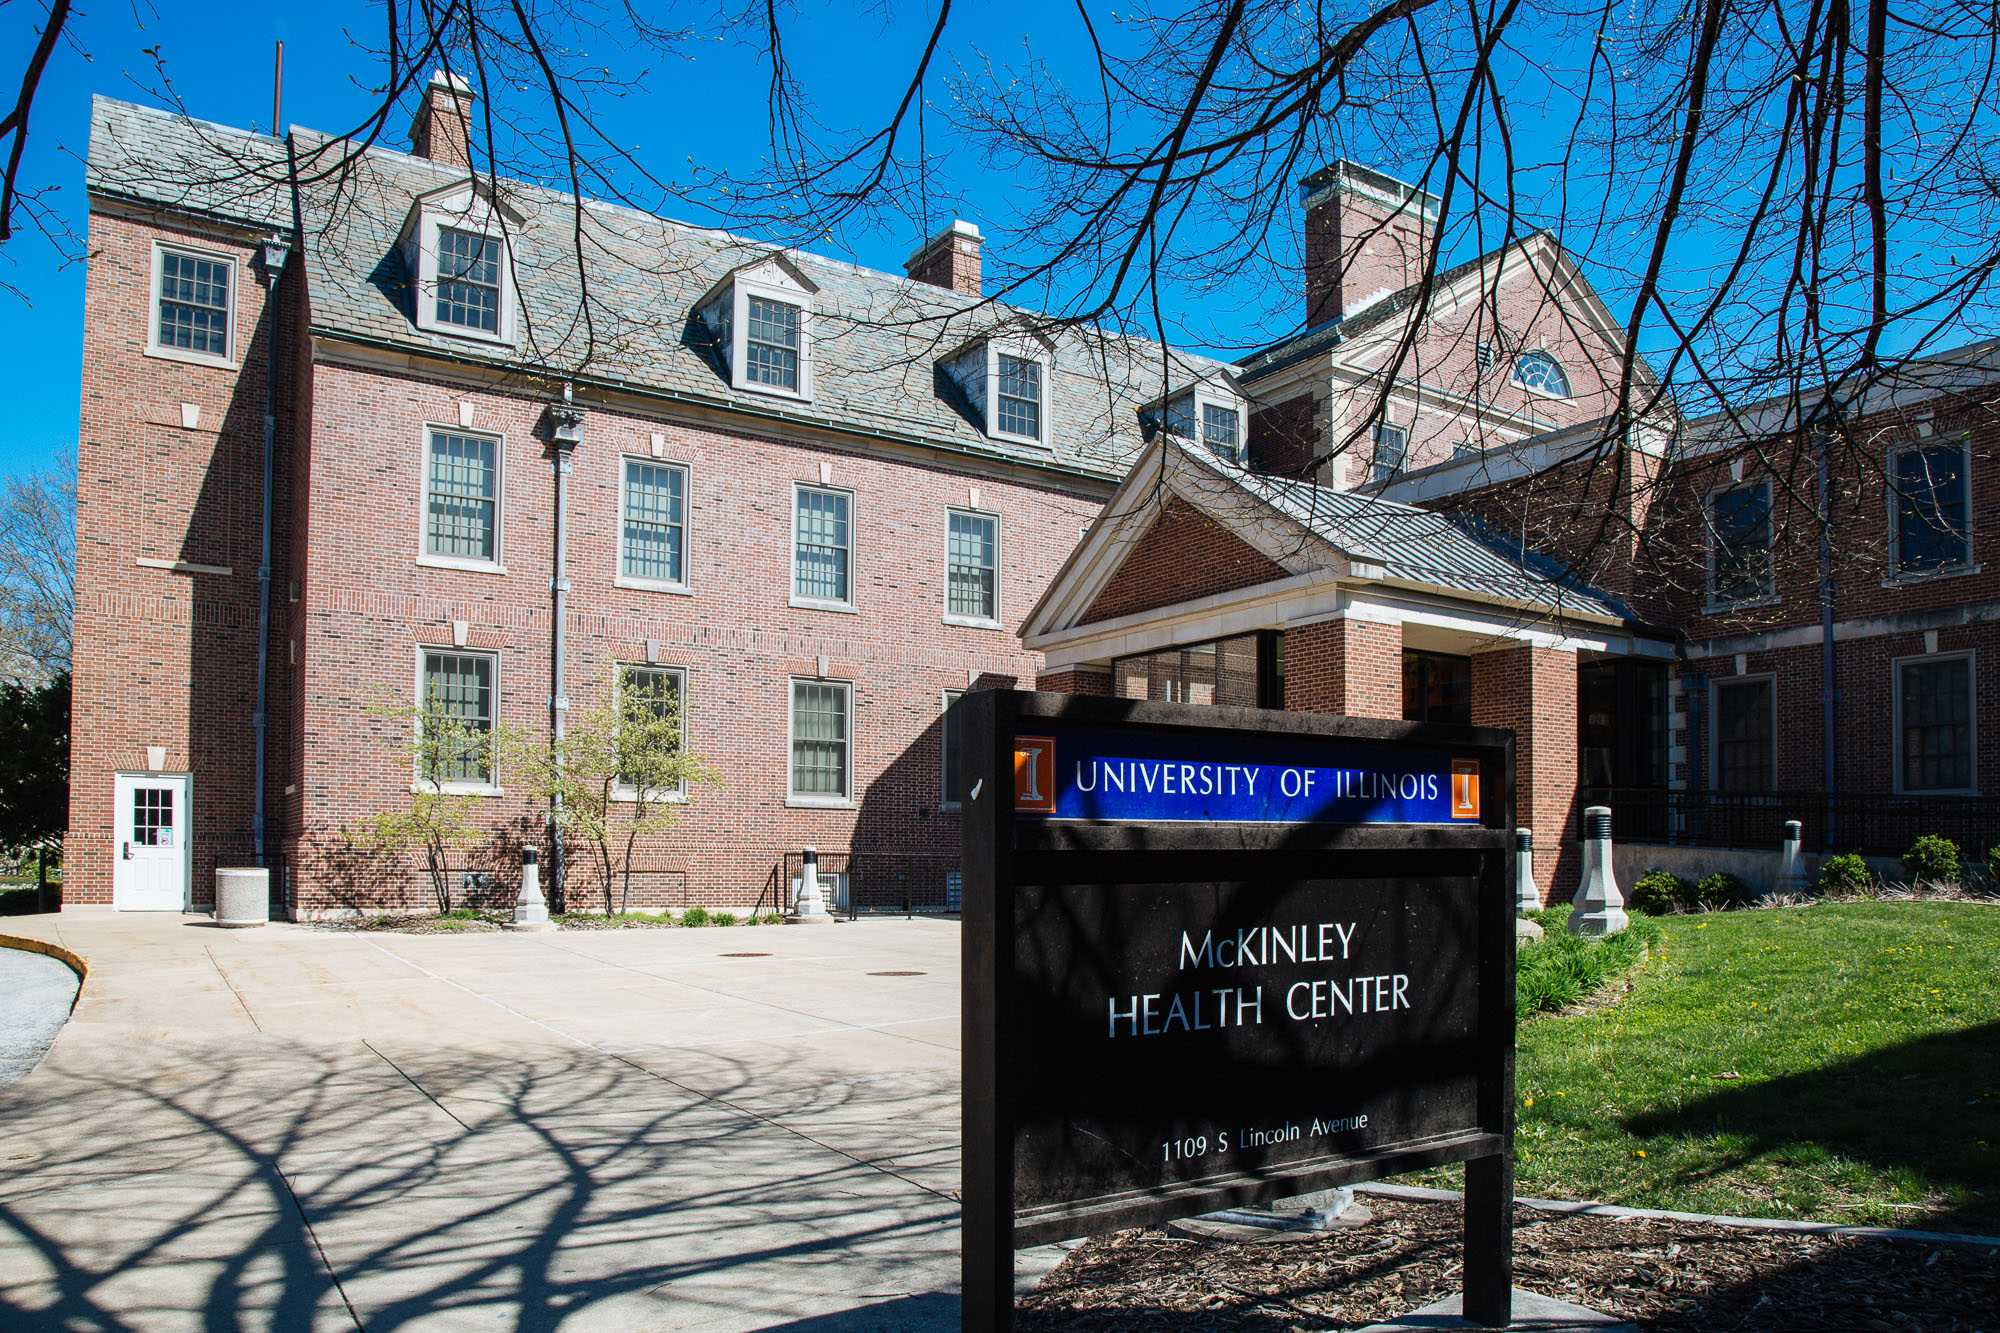 When you're having trouble with your mental health, McKinley Health Center is a crucial resource.